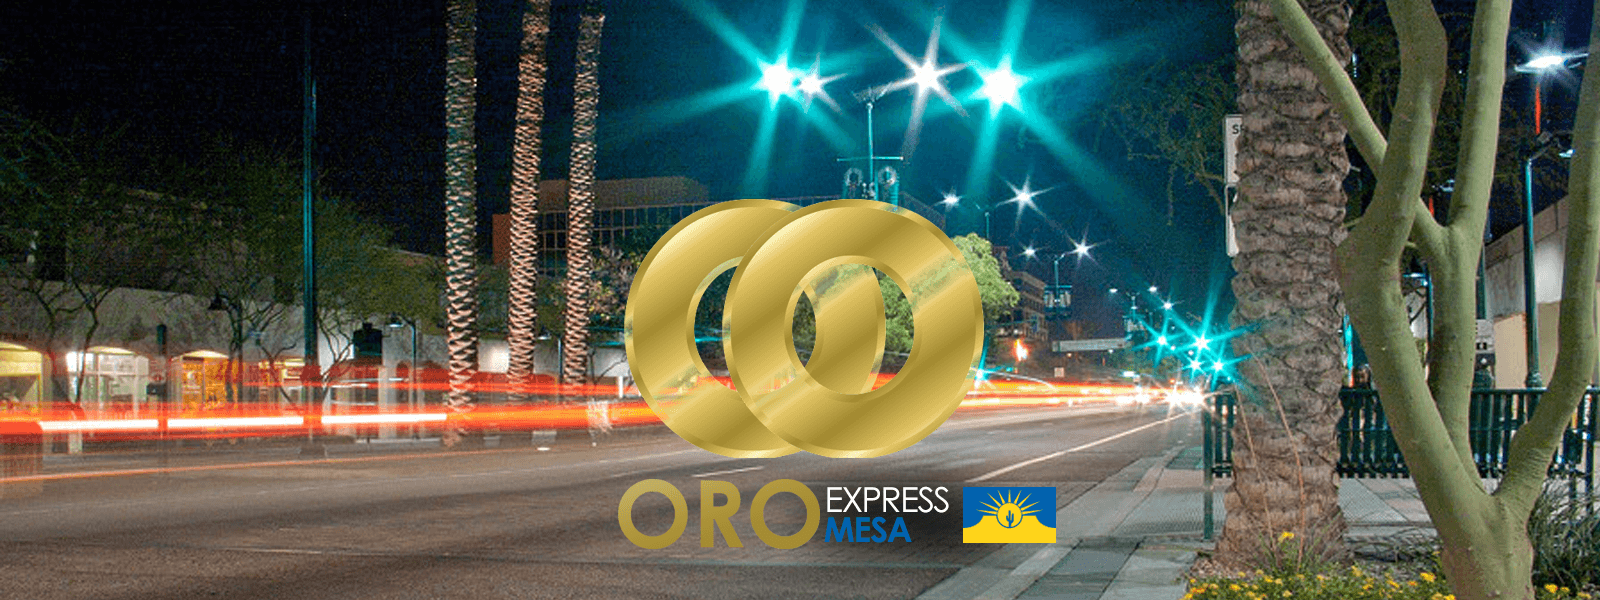 Thanks to our zip code directory, residents of the 85205 zip code can reach Oro Mesa with relative ease!